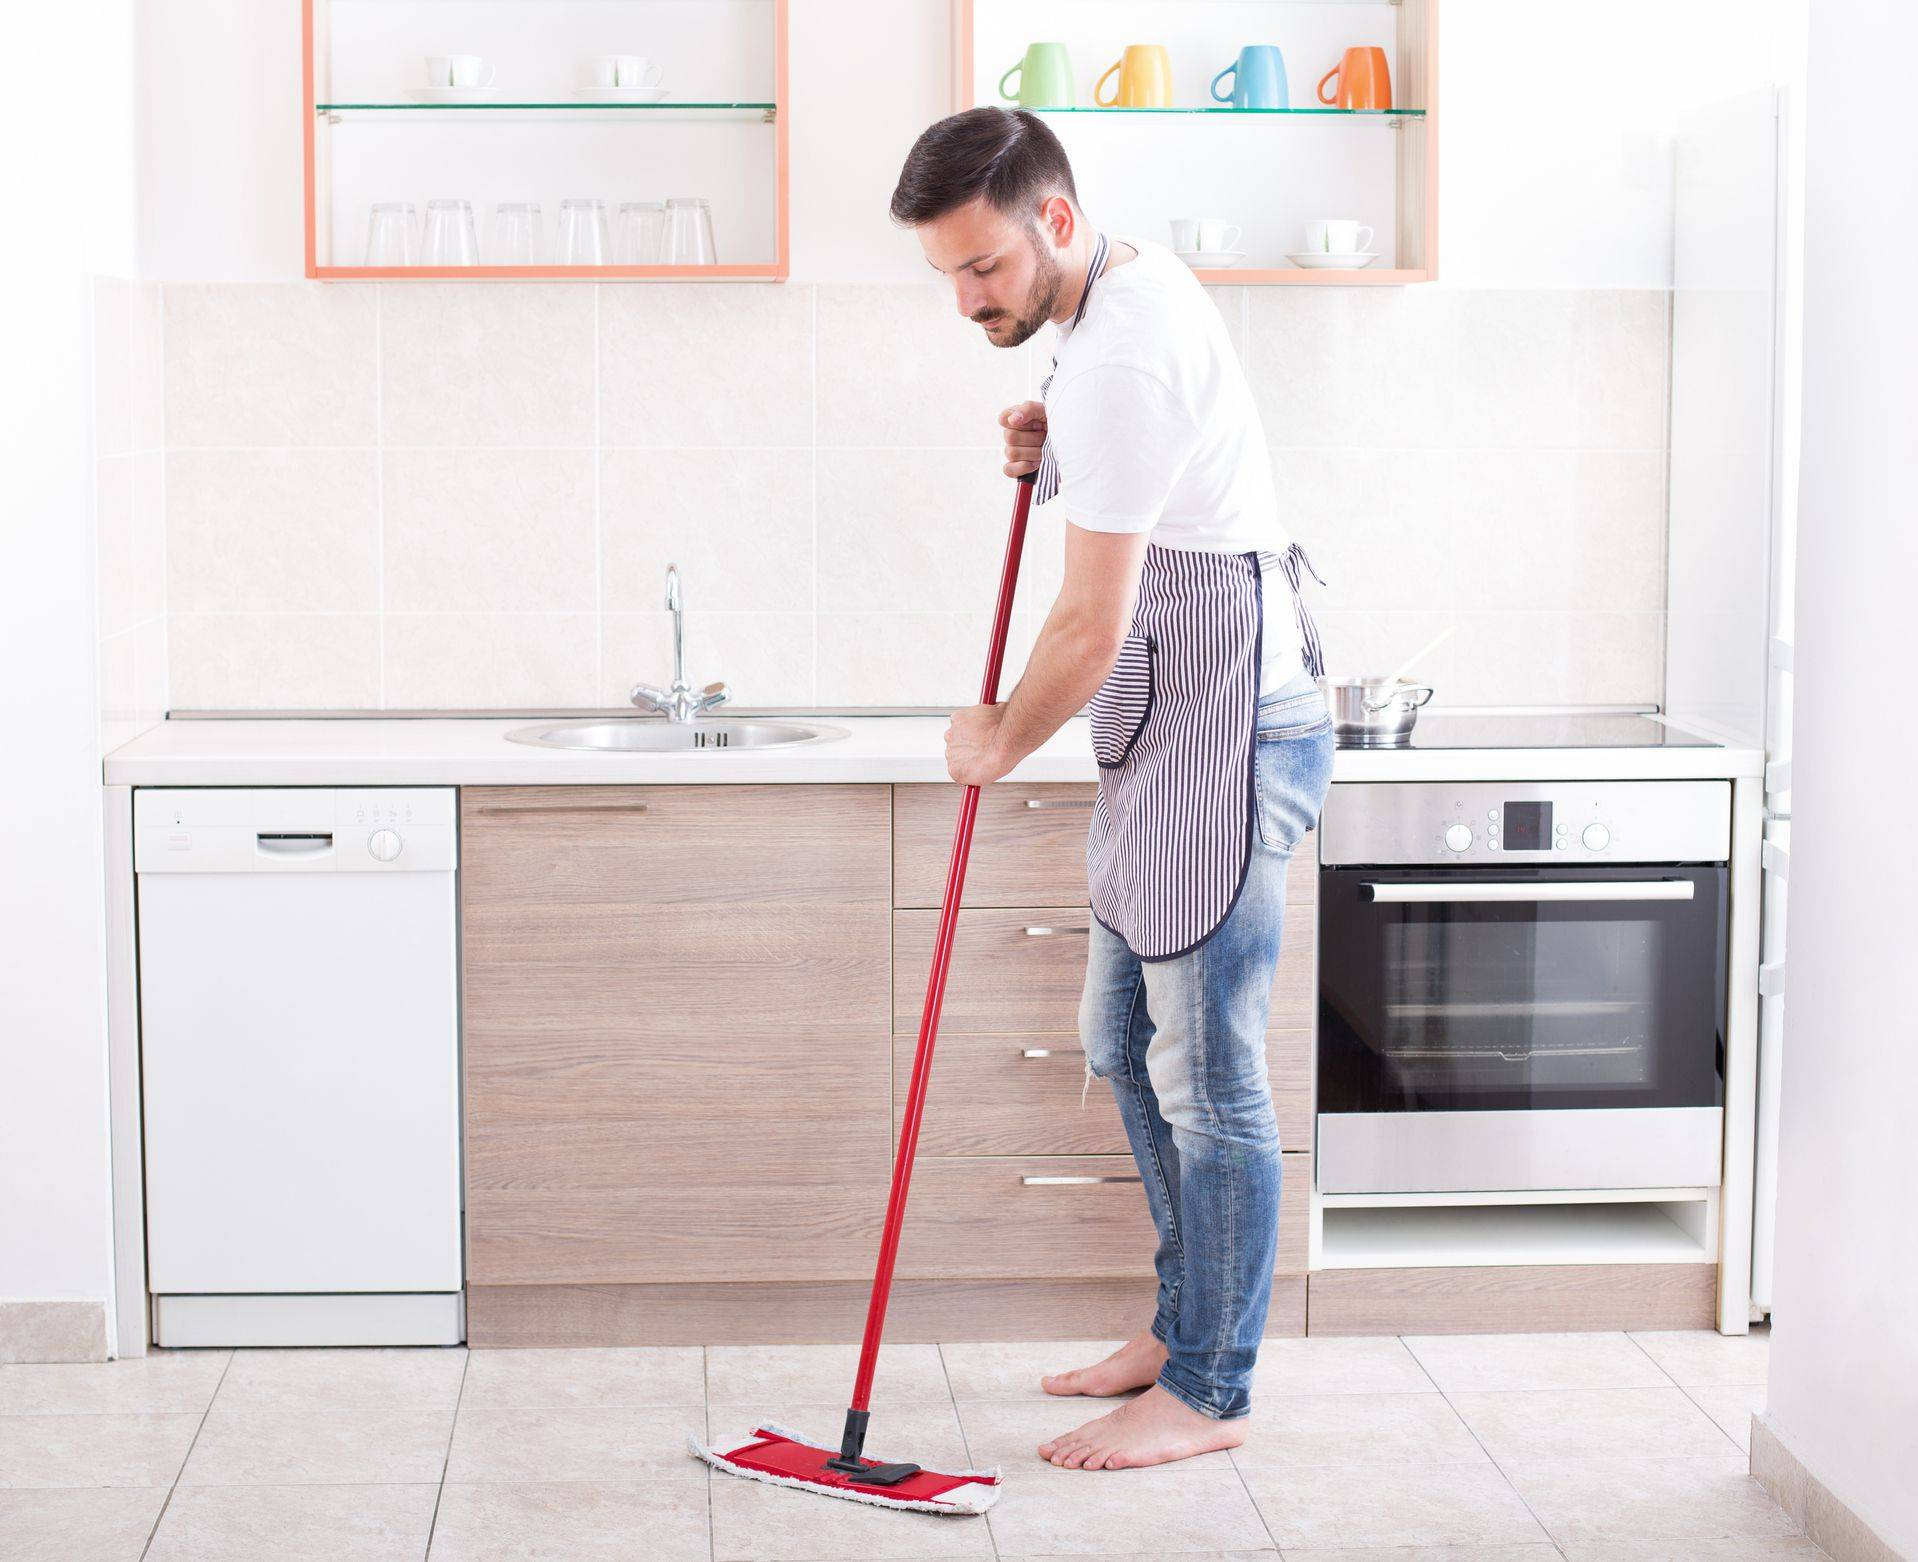 Manmoppingkitchenfloor Getty e eabe9c02eeffc1abf